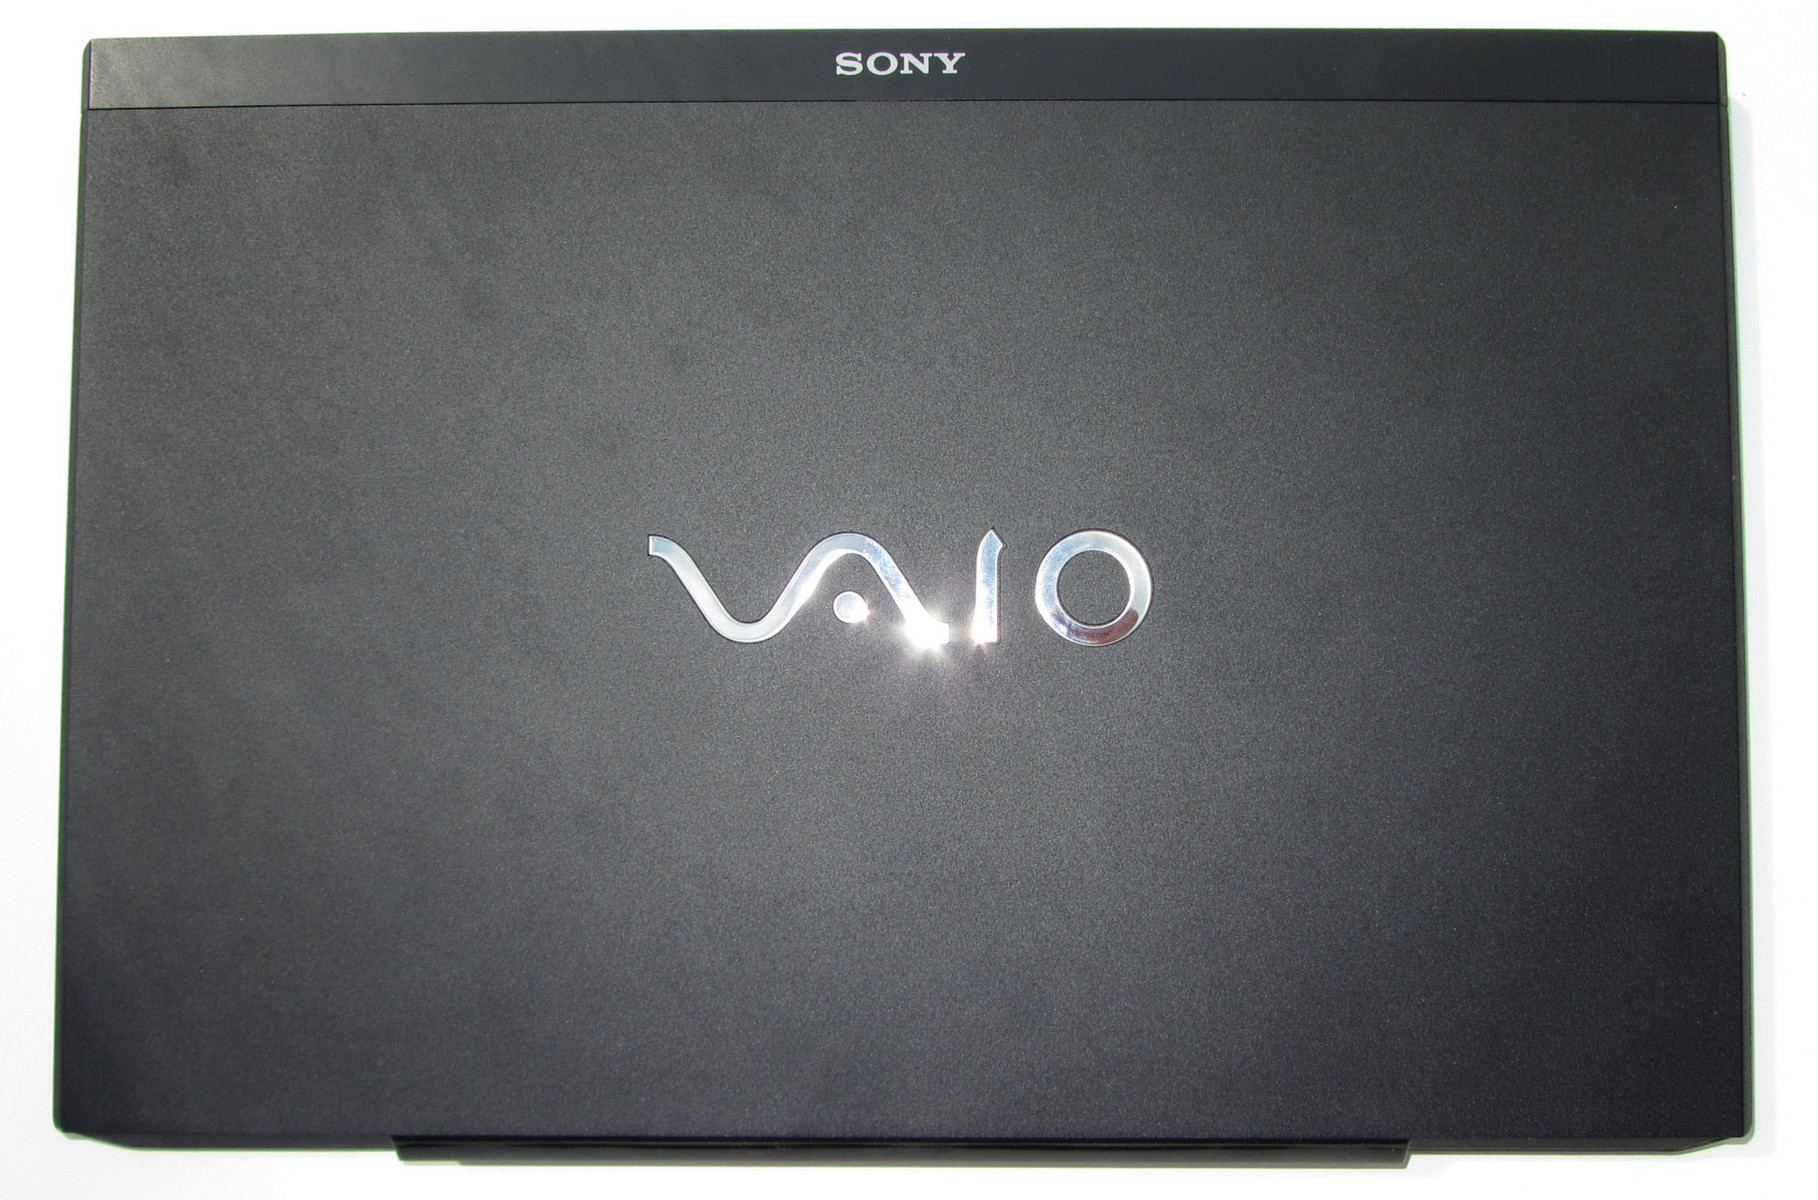 SONY VAIO SVS151A11L DRIVER DOWNLOAD (2019)